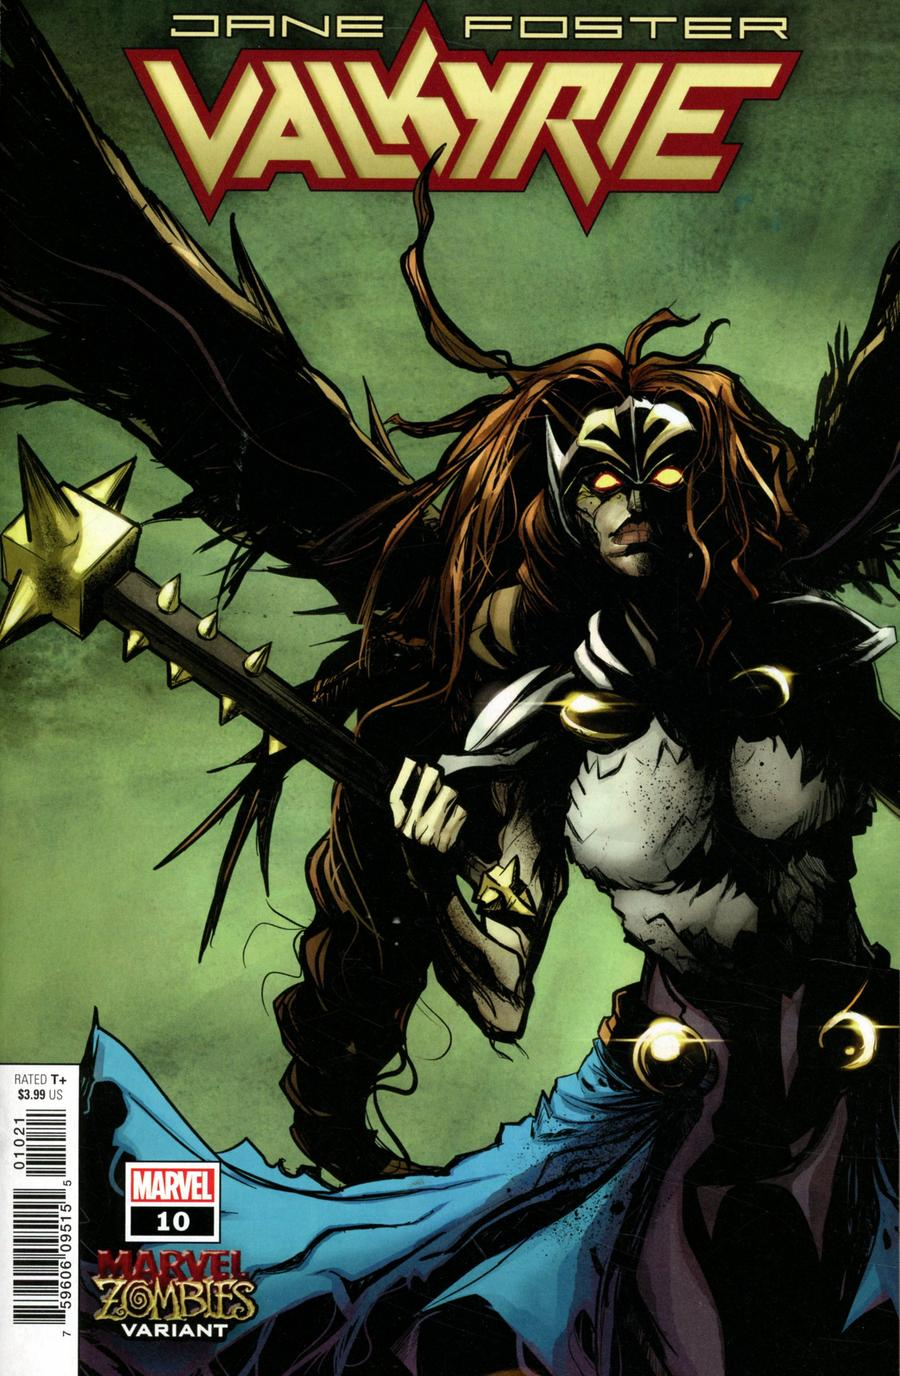 Valkyrie: Jane Foster (2019) #10 Robbi Rodriguez Marvel Zombies Cover